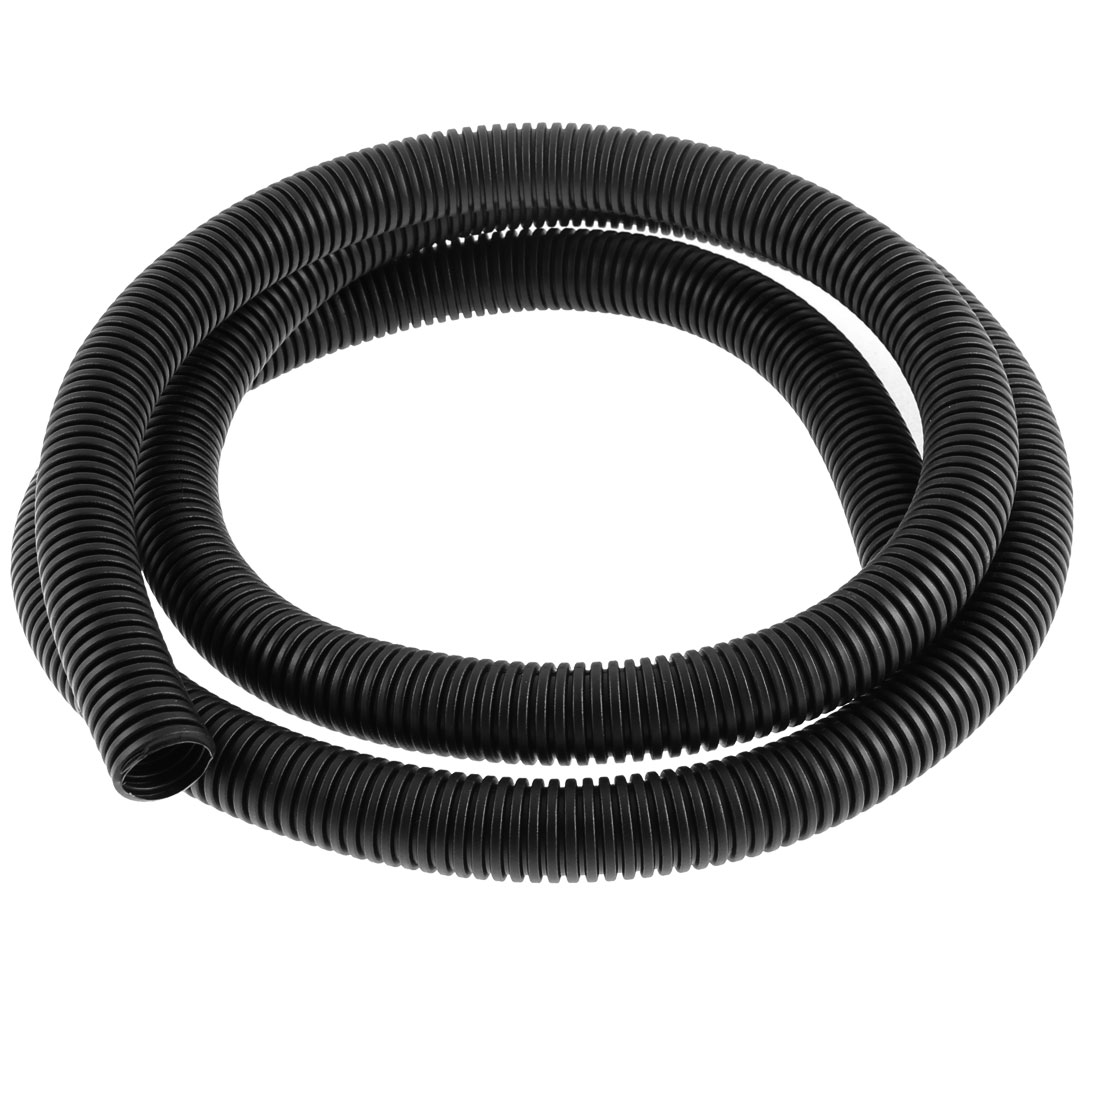 1.6M 5ft 16mmx20mm Black PVC Flexible Corrugated Tubing Cable Conduit Sleeve(China (Mainland))